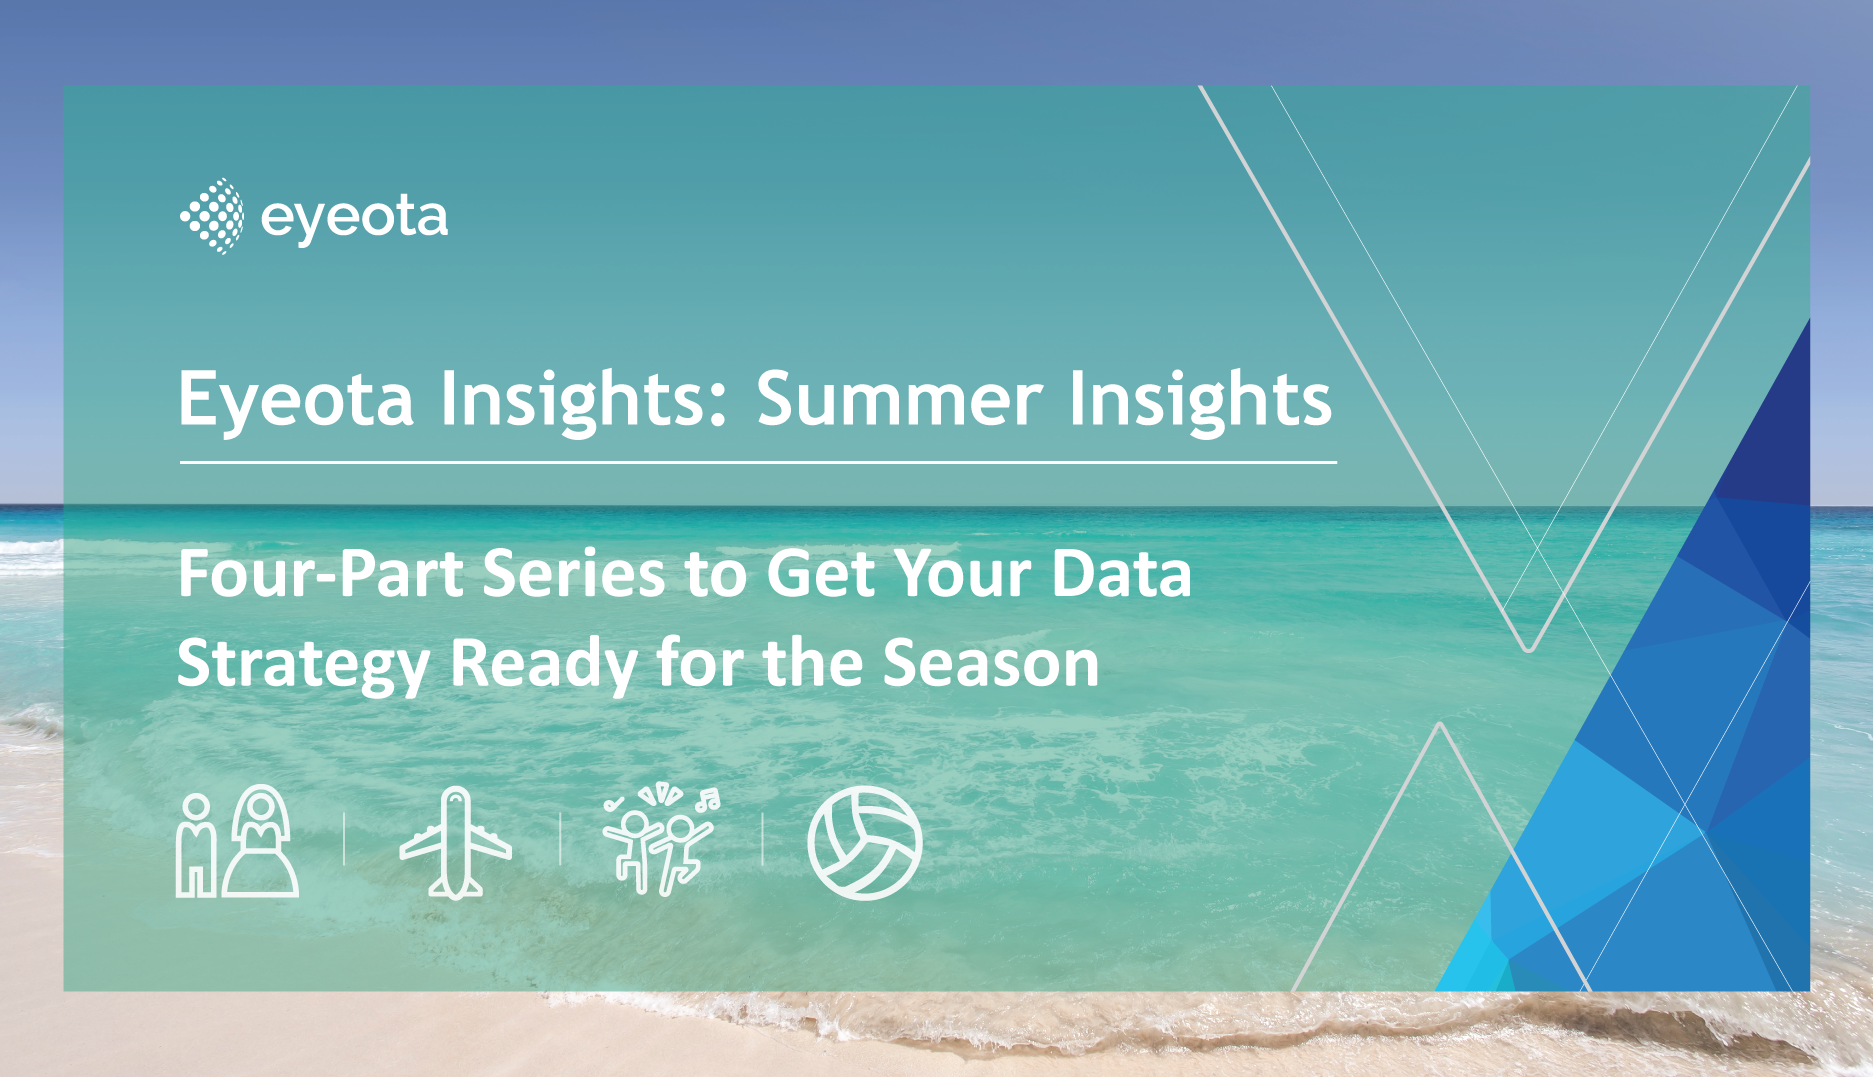 Eyeota Insights: Summer Insights Series to Get Your Data Strategy Ready for the Season